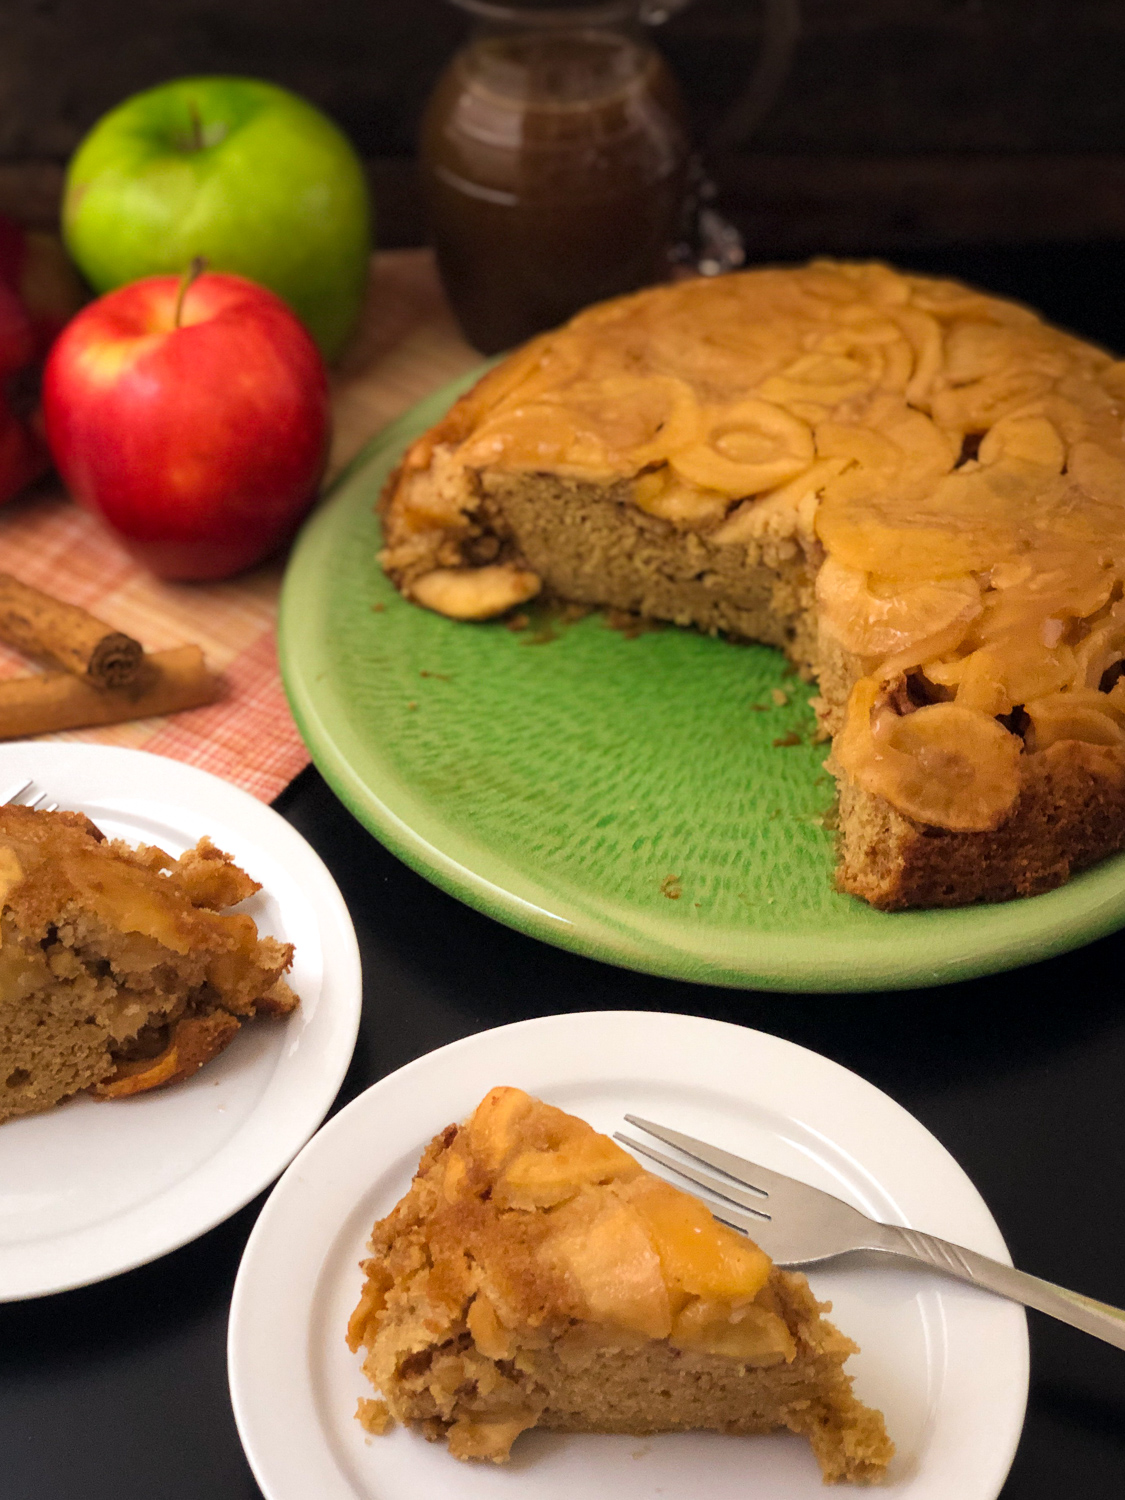 Two slices of apple cake with the remaining on a platter in the background.